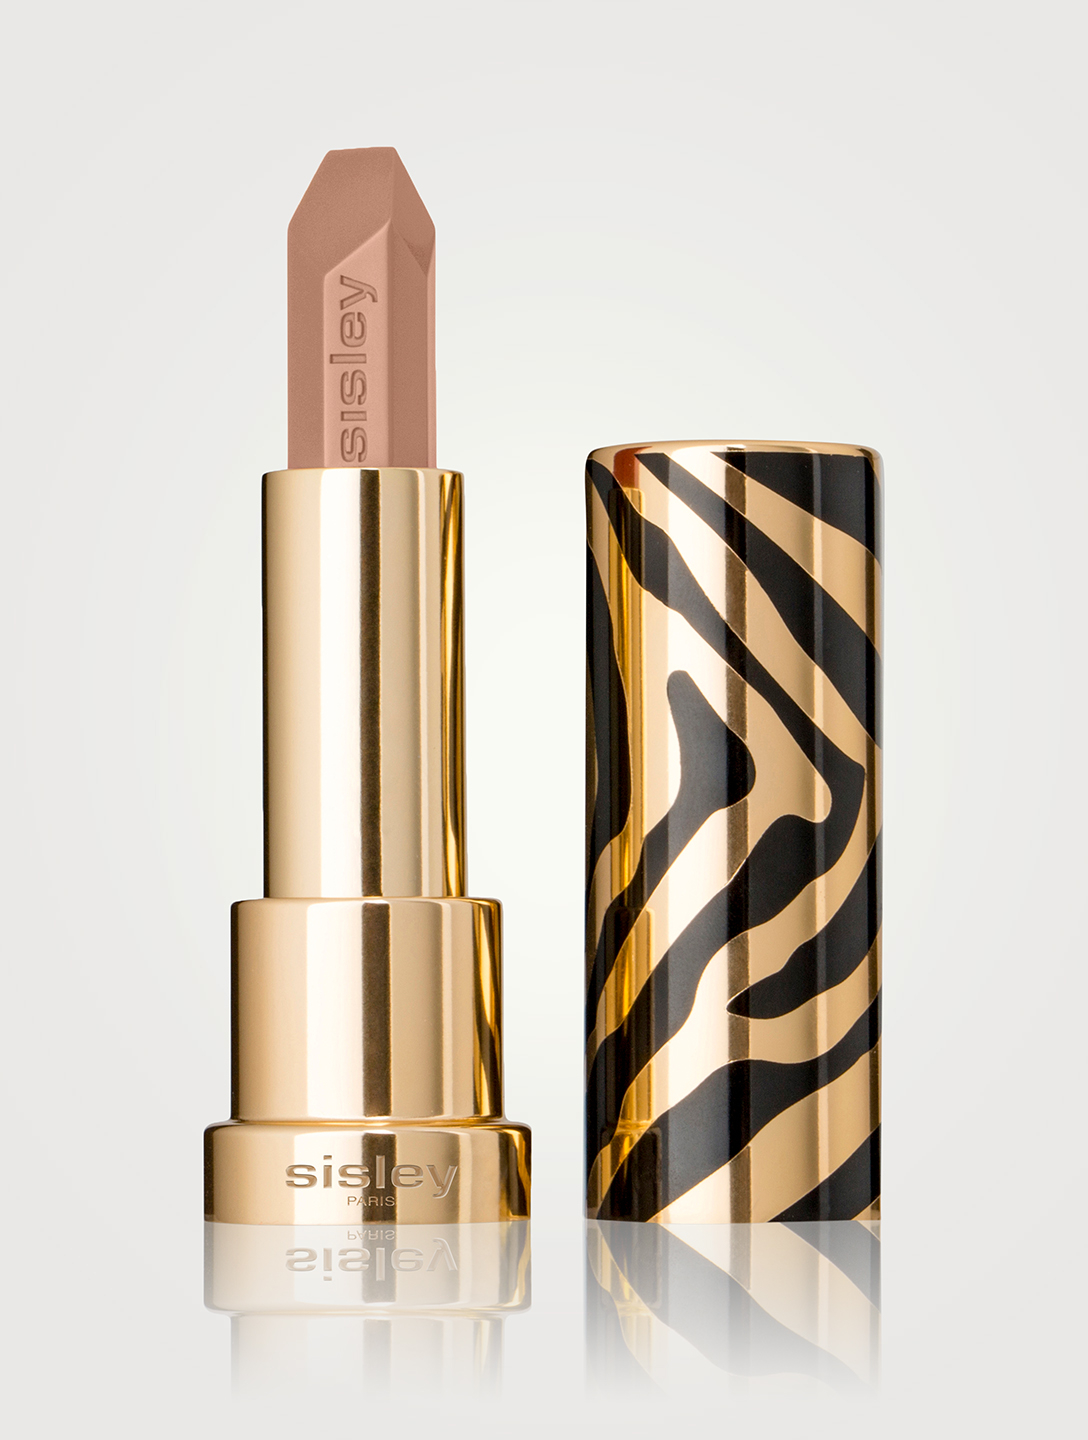 SISLEY-PARIS Le Phyto Rouge Lipstick Beauty Neutral